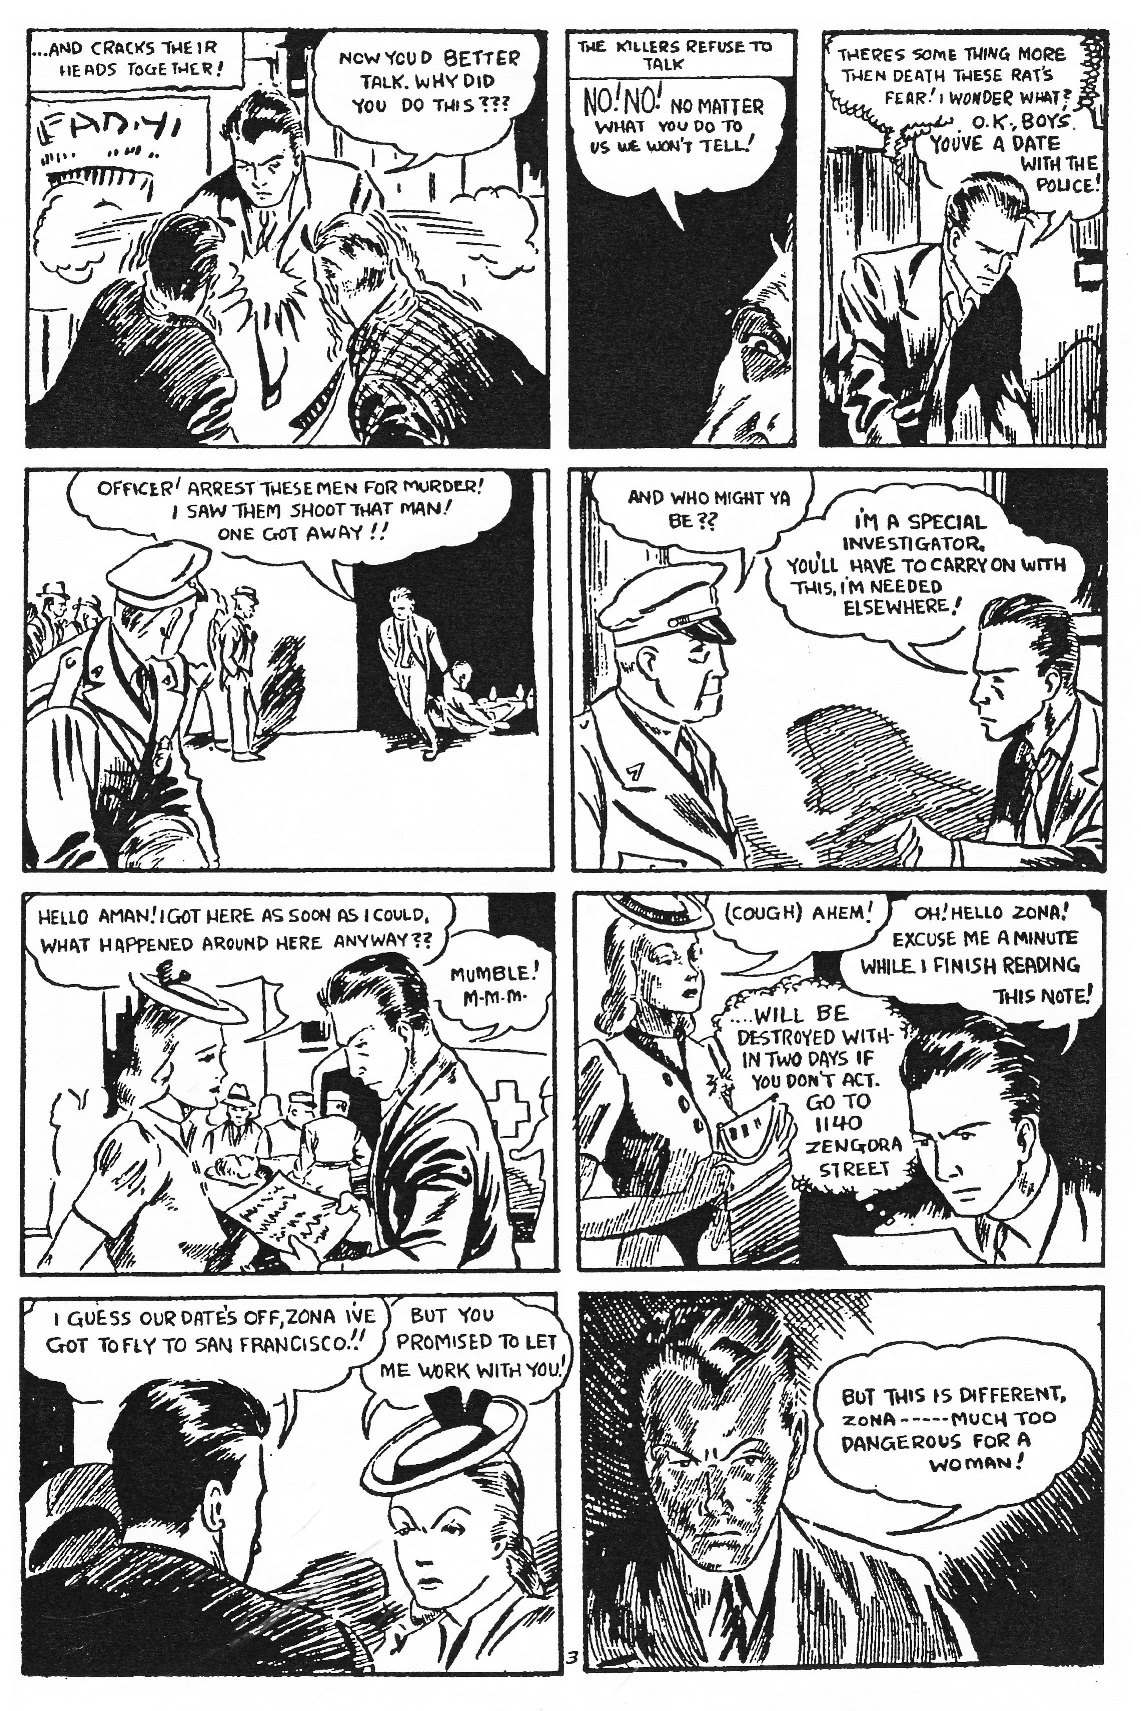 Read online Men of Mystery Comics comic -  Issue #83 - 15